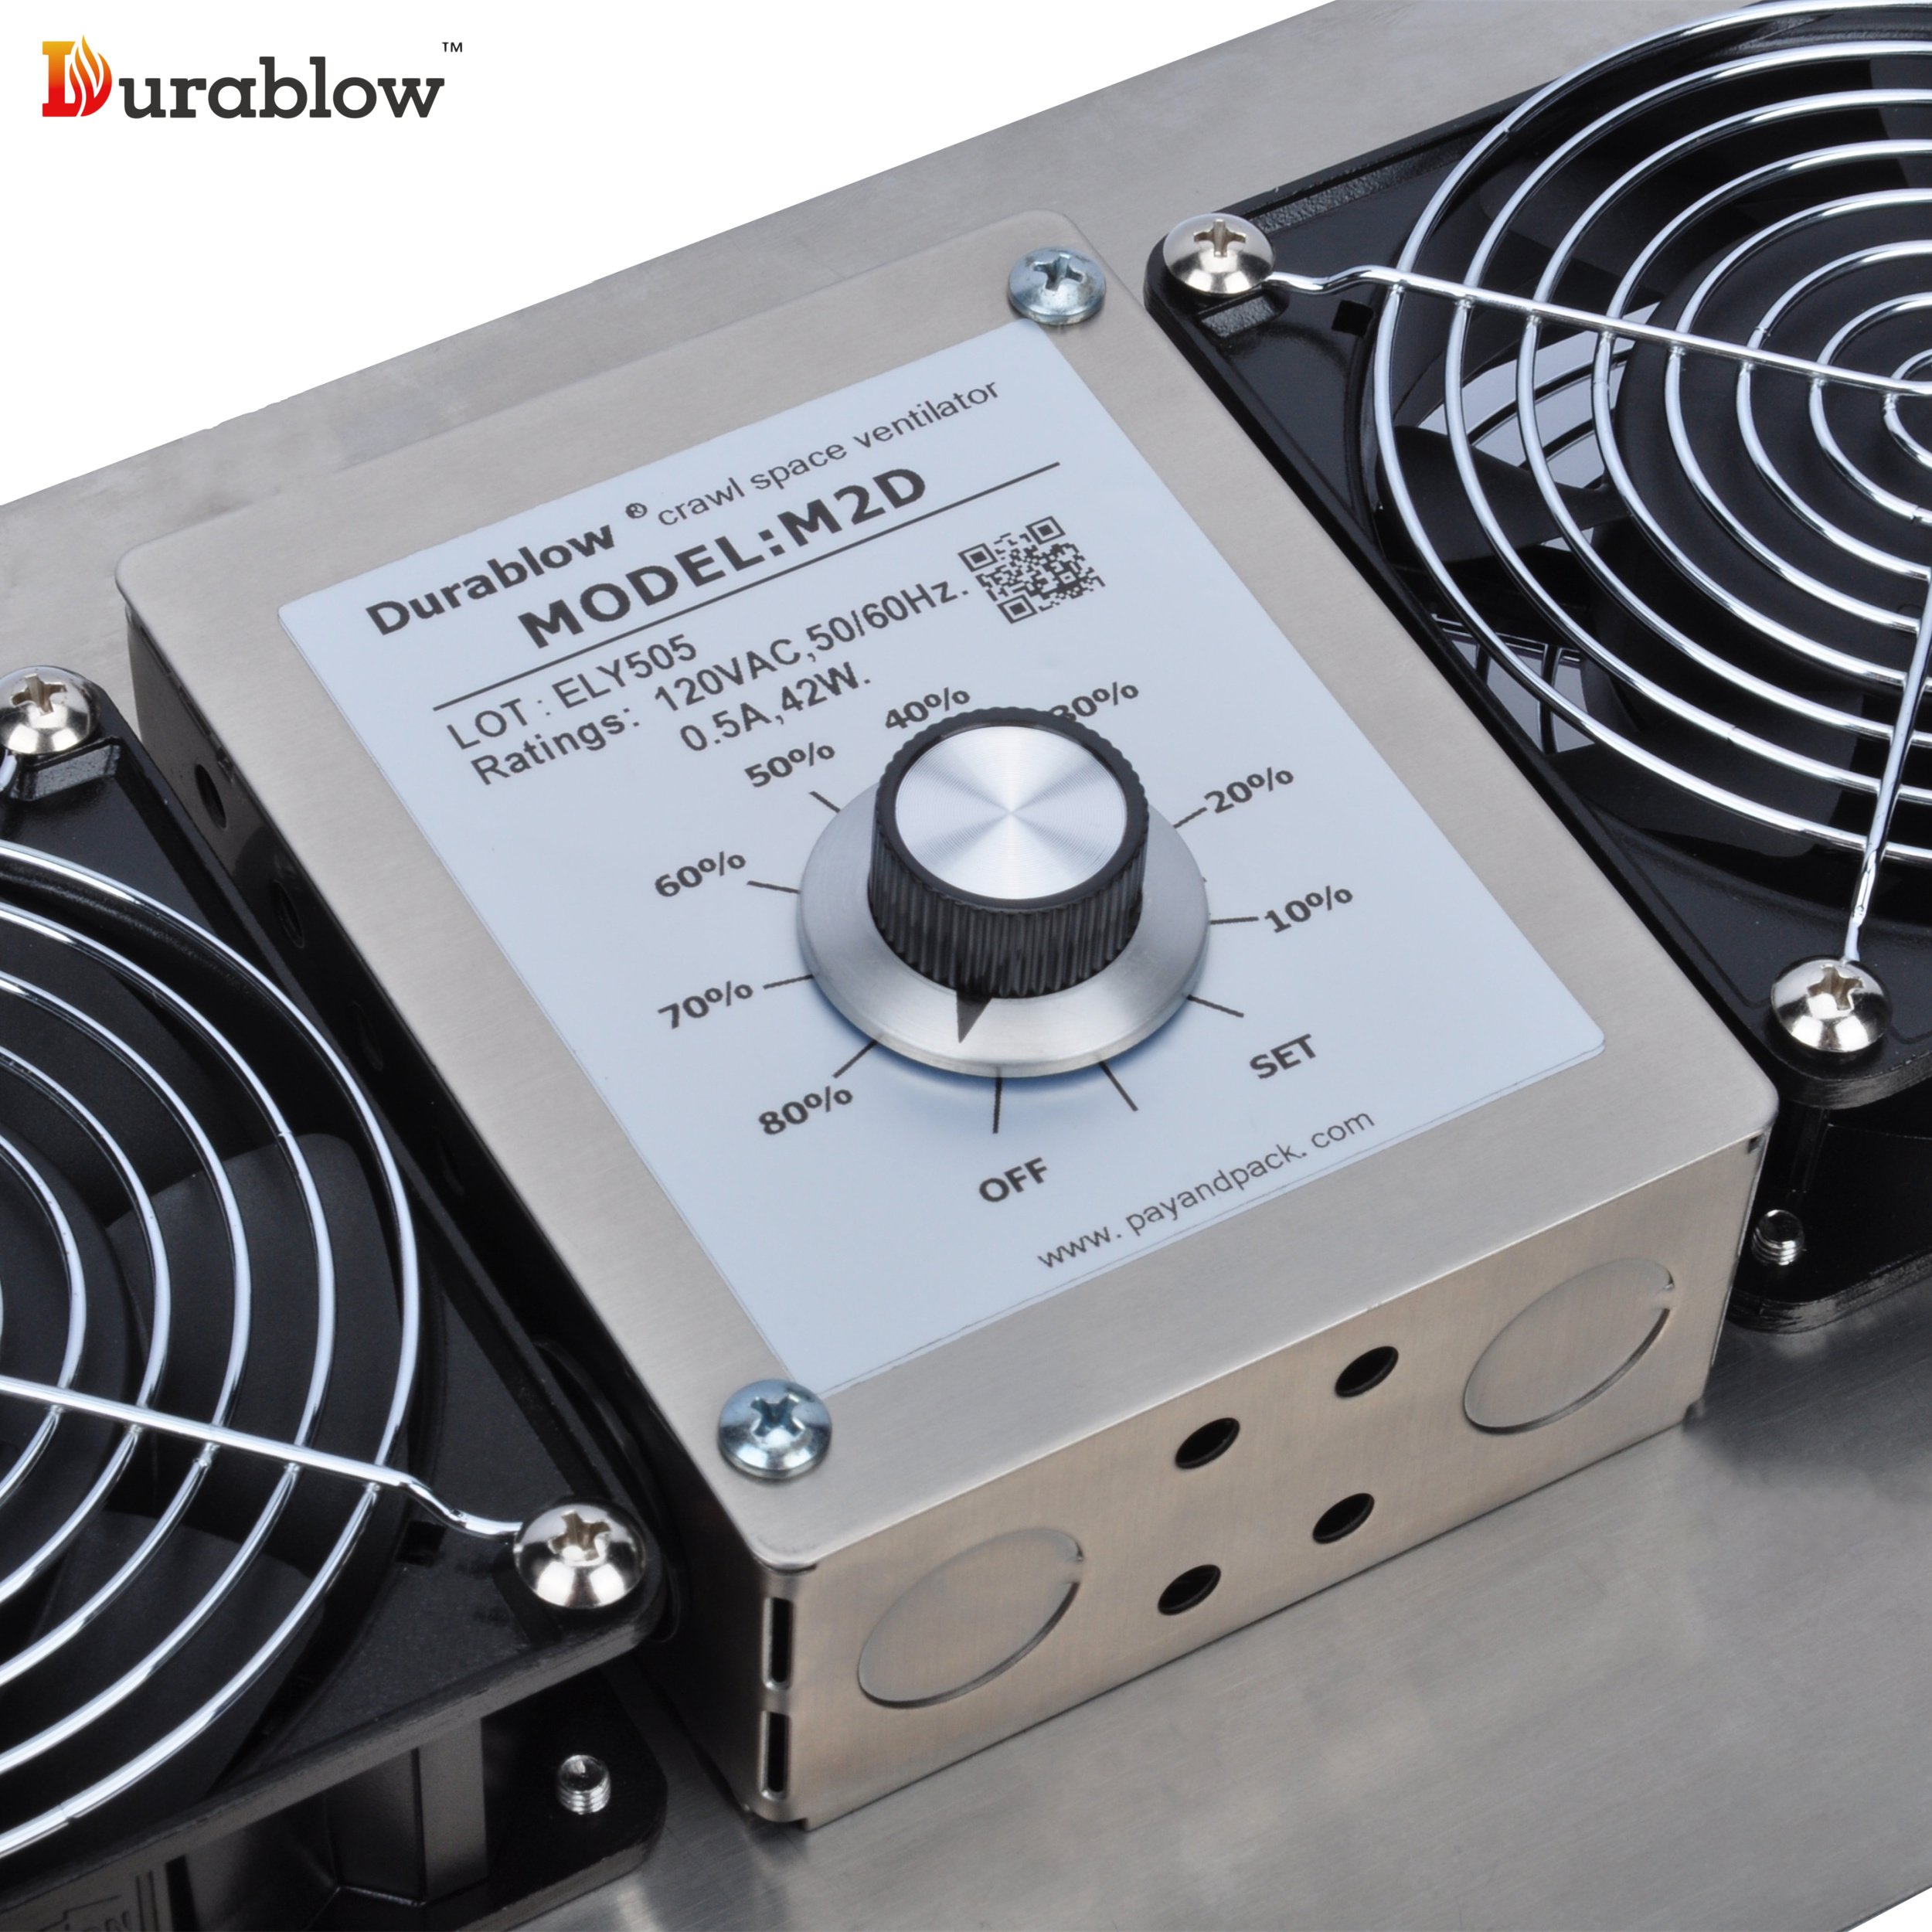 Durablow Stainless Steel Crawl Space Foundation Dual Fans Ventilator + Built-in Dehumidistat (Stainless Steel 304, M2D) by Durablow (Image #6)